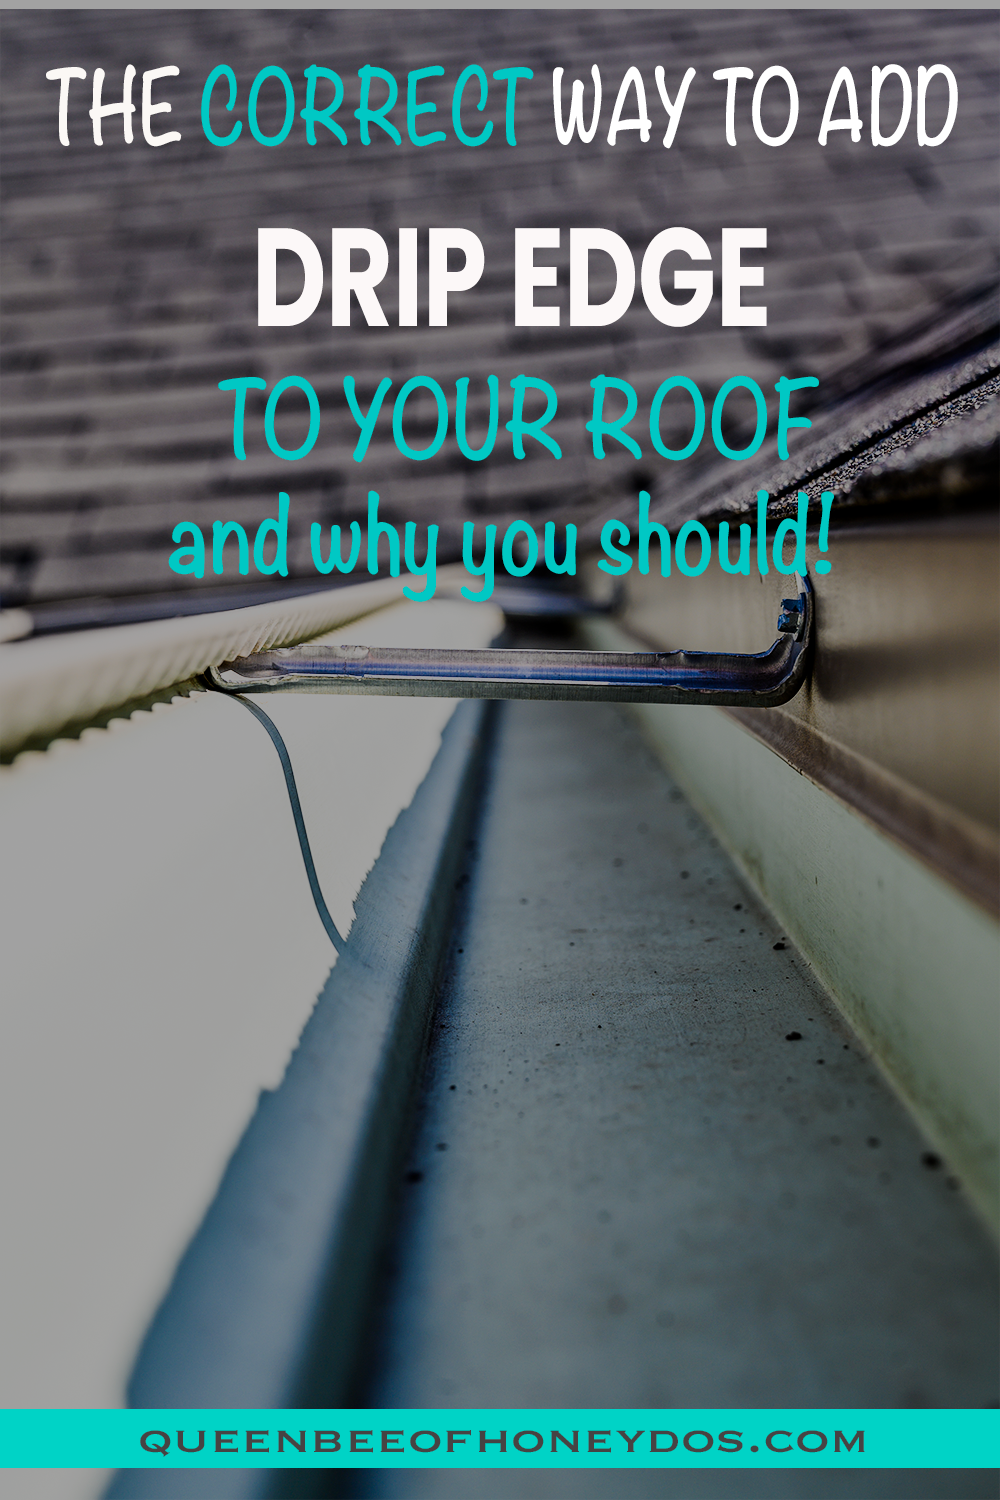 How To Install Drip Edge The Proper Way Queen Bee Of Honey Dos In 2020 Drip Edge Roof Sheathing Installation